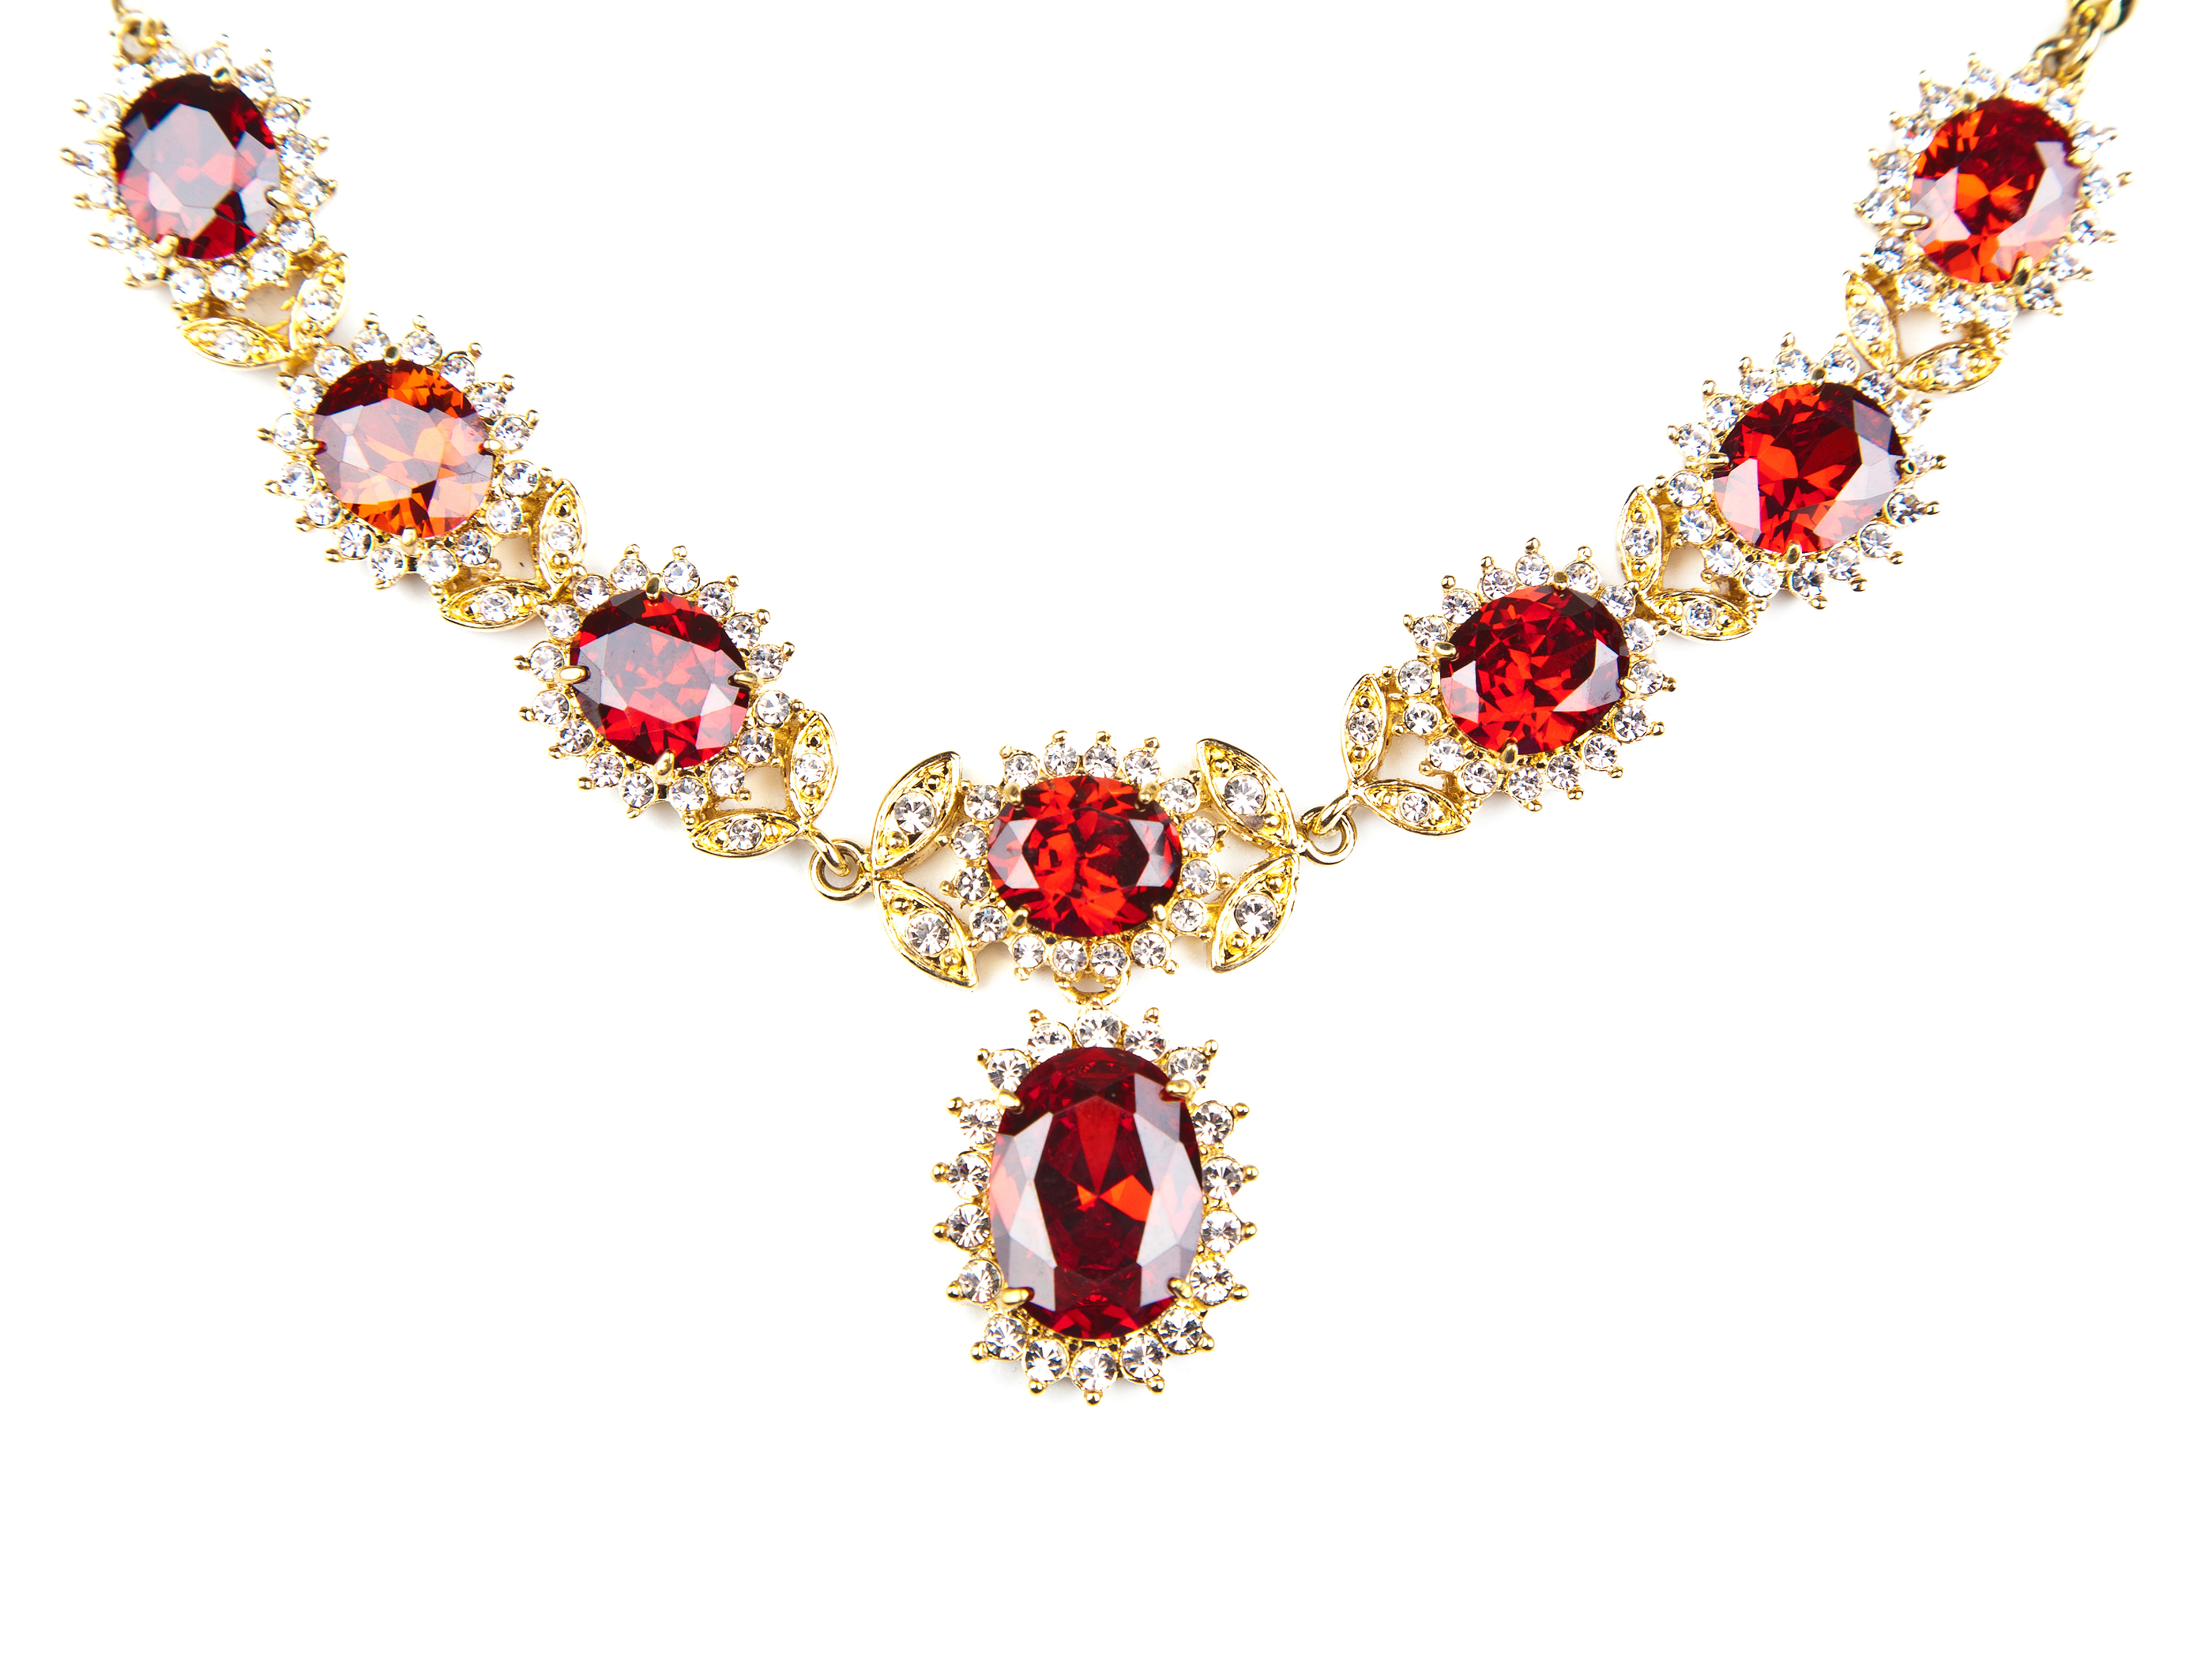 jewellery and pomegranate zoom by alef ruby necklace gold jewelry loading bet paula